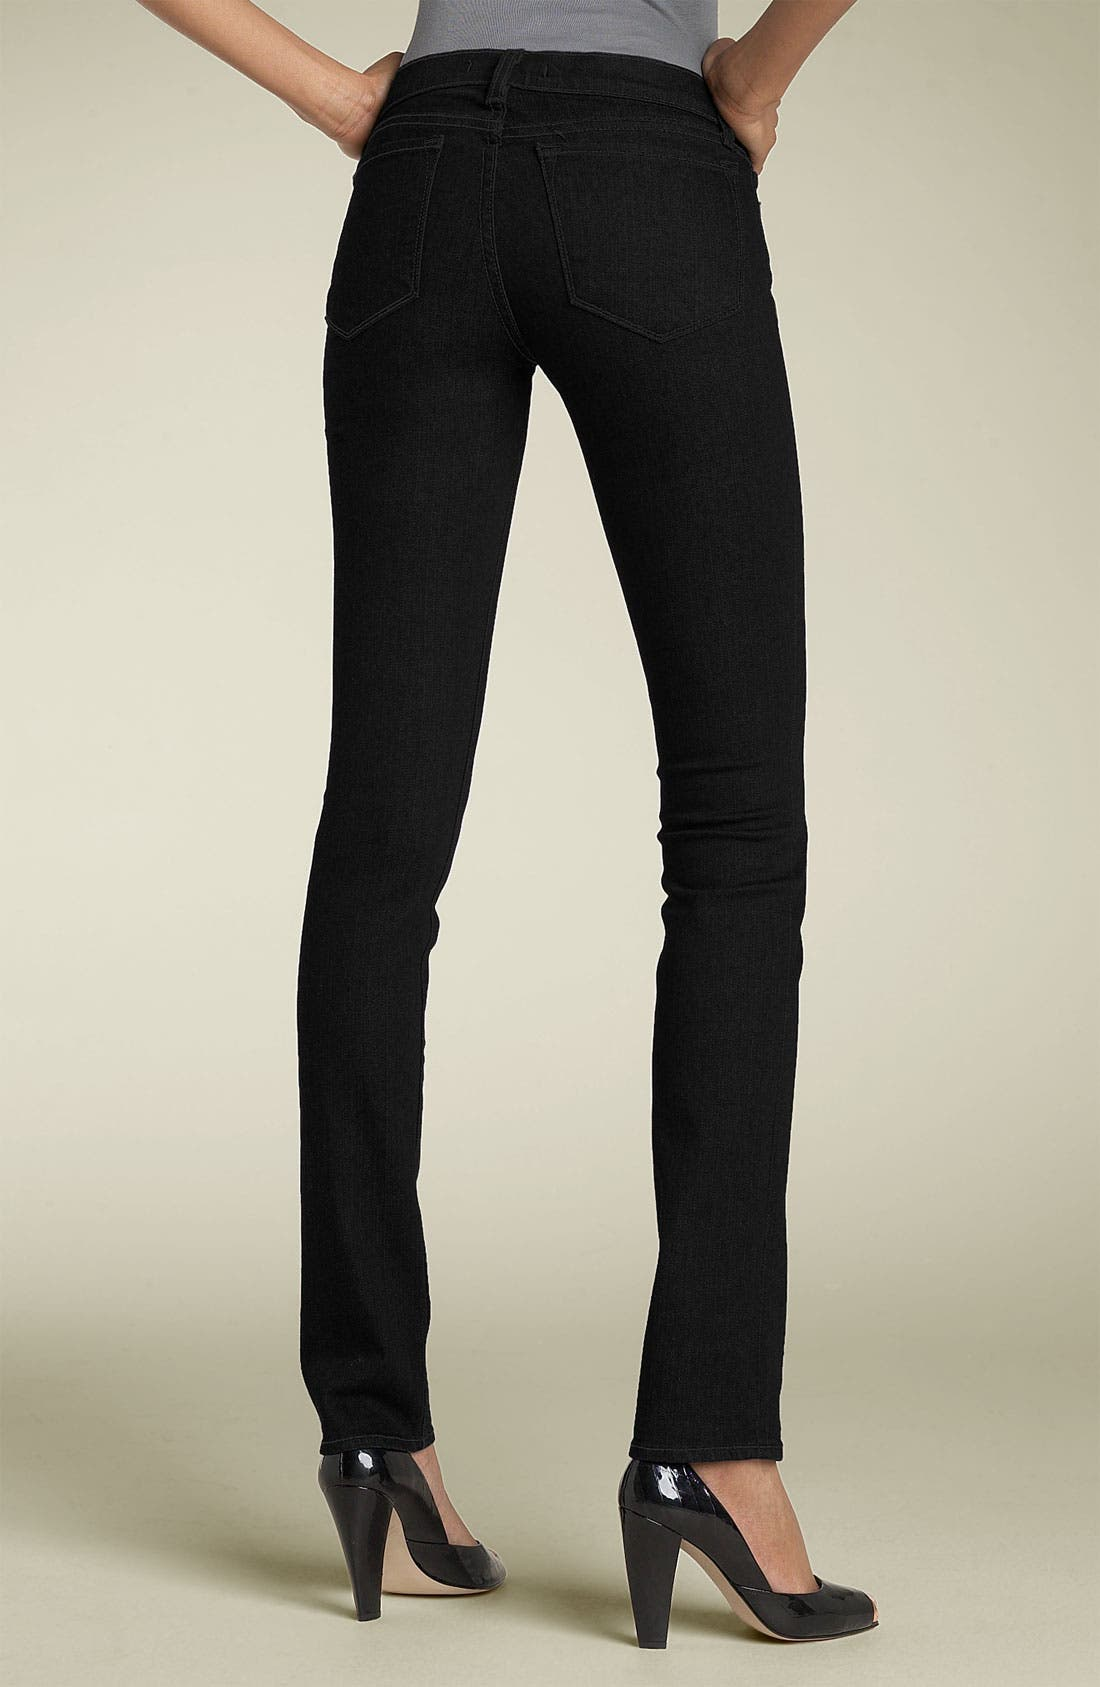 '912 The Pencil' Stretch Jeans,                         Main,                         color, 001